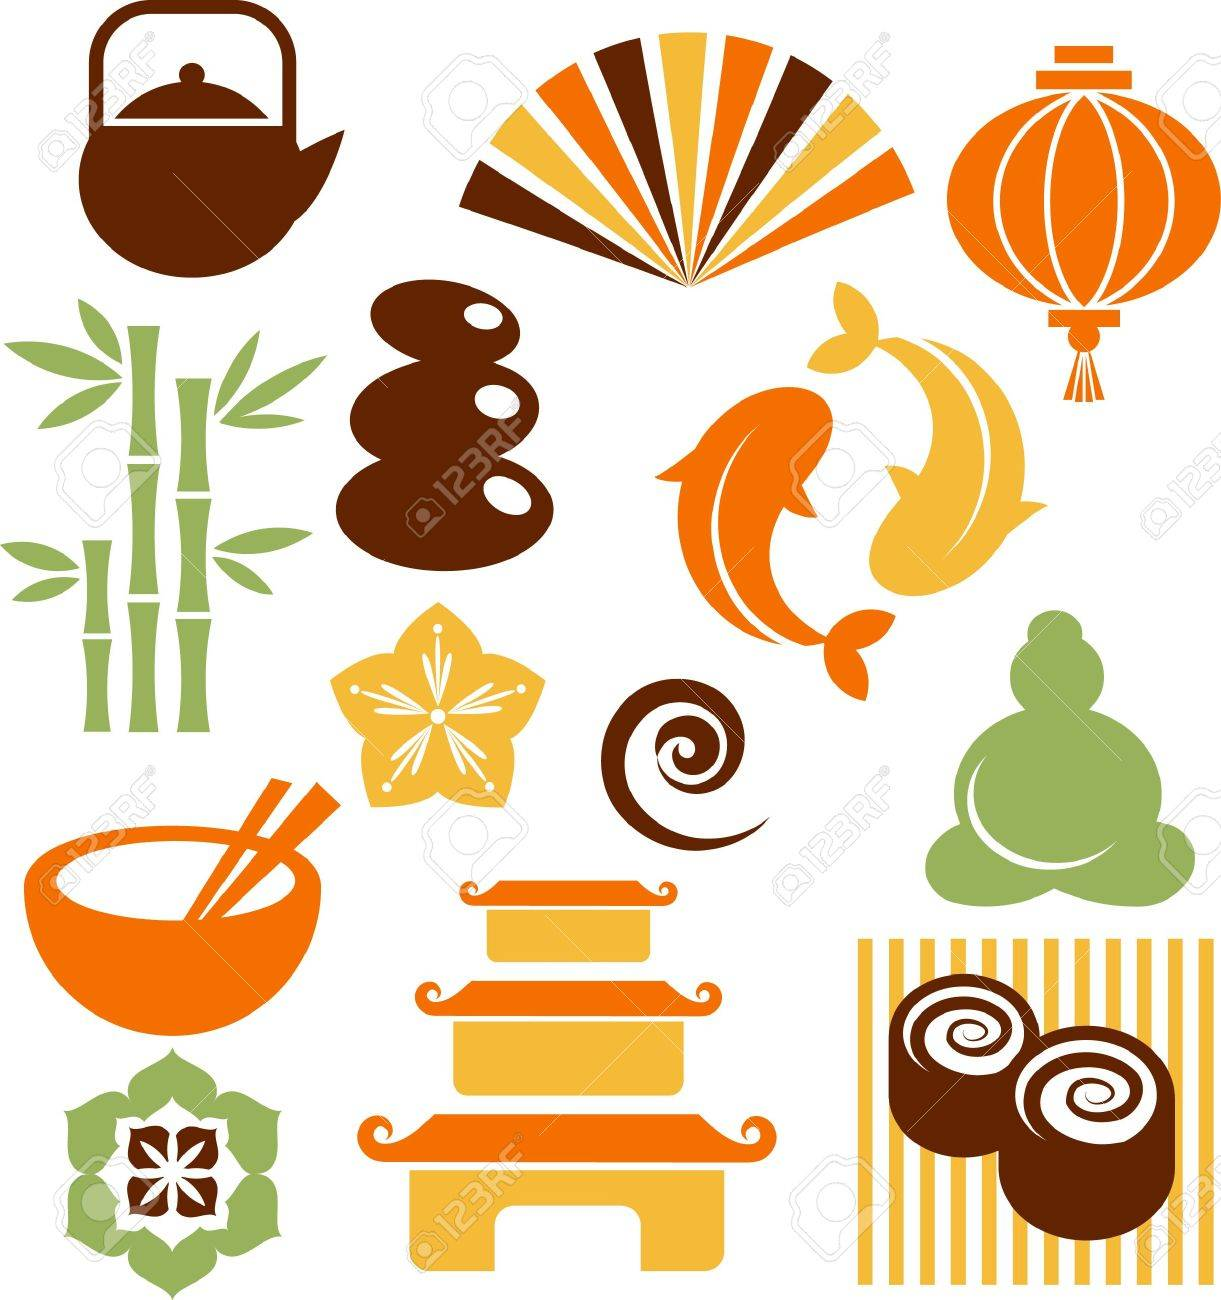 Collection of colorful Zen icons - vector illustration Stock Photo - 6451950